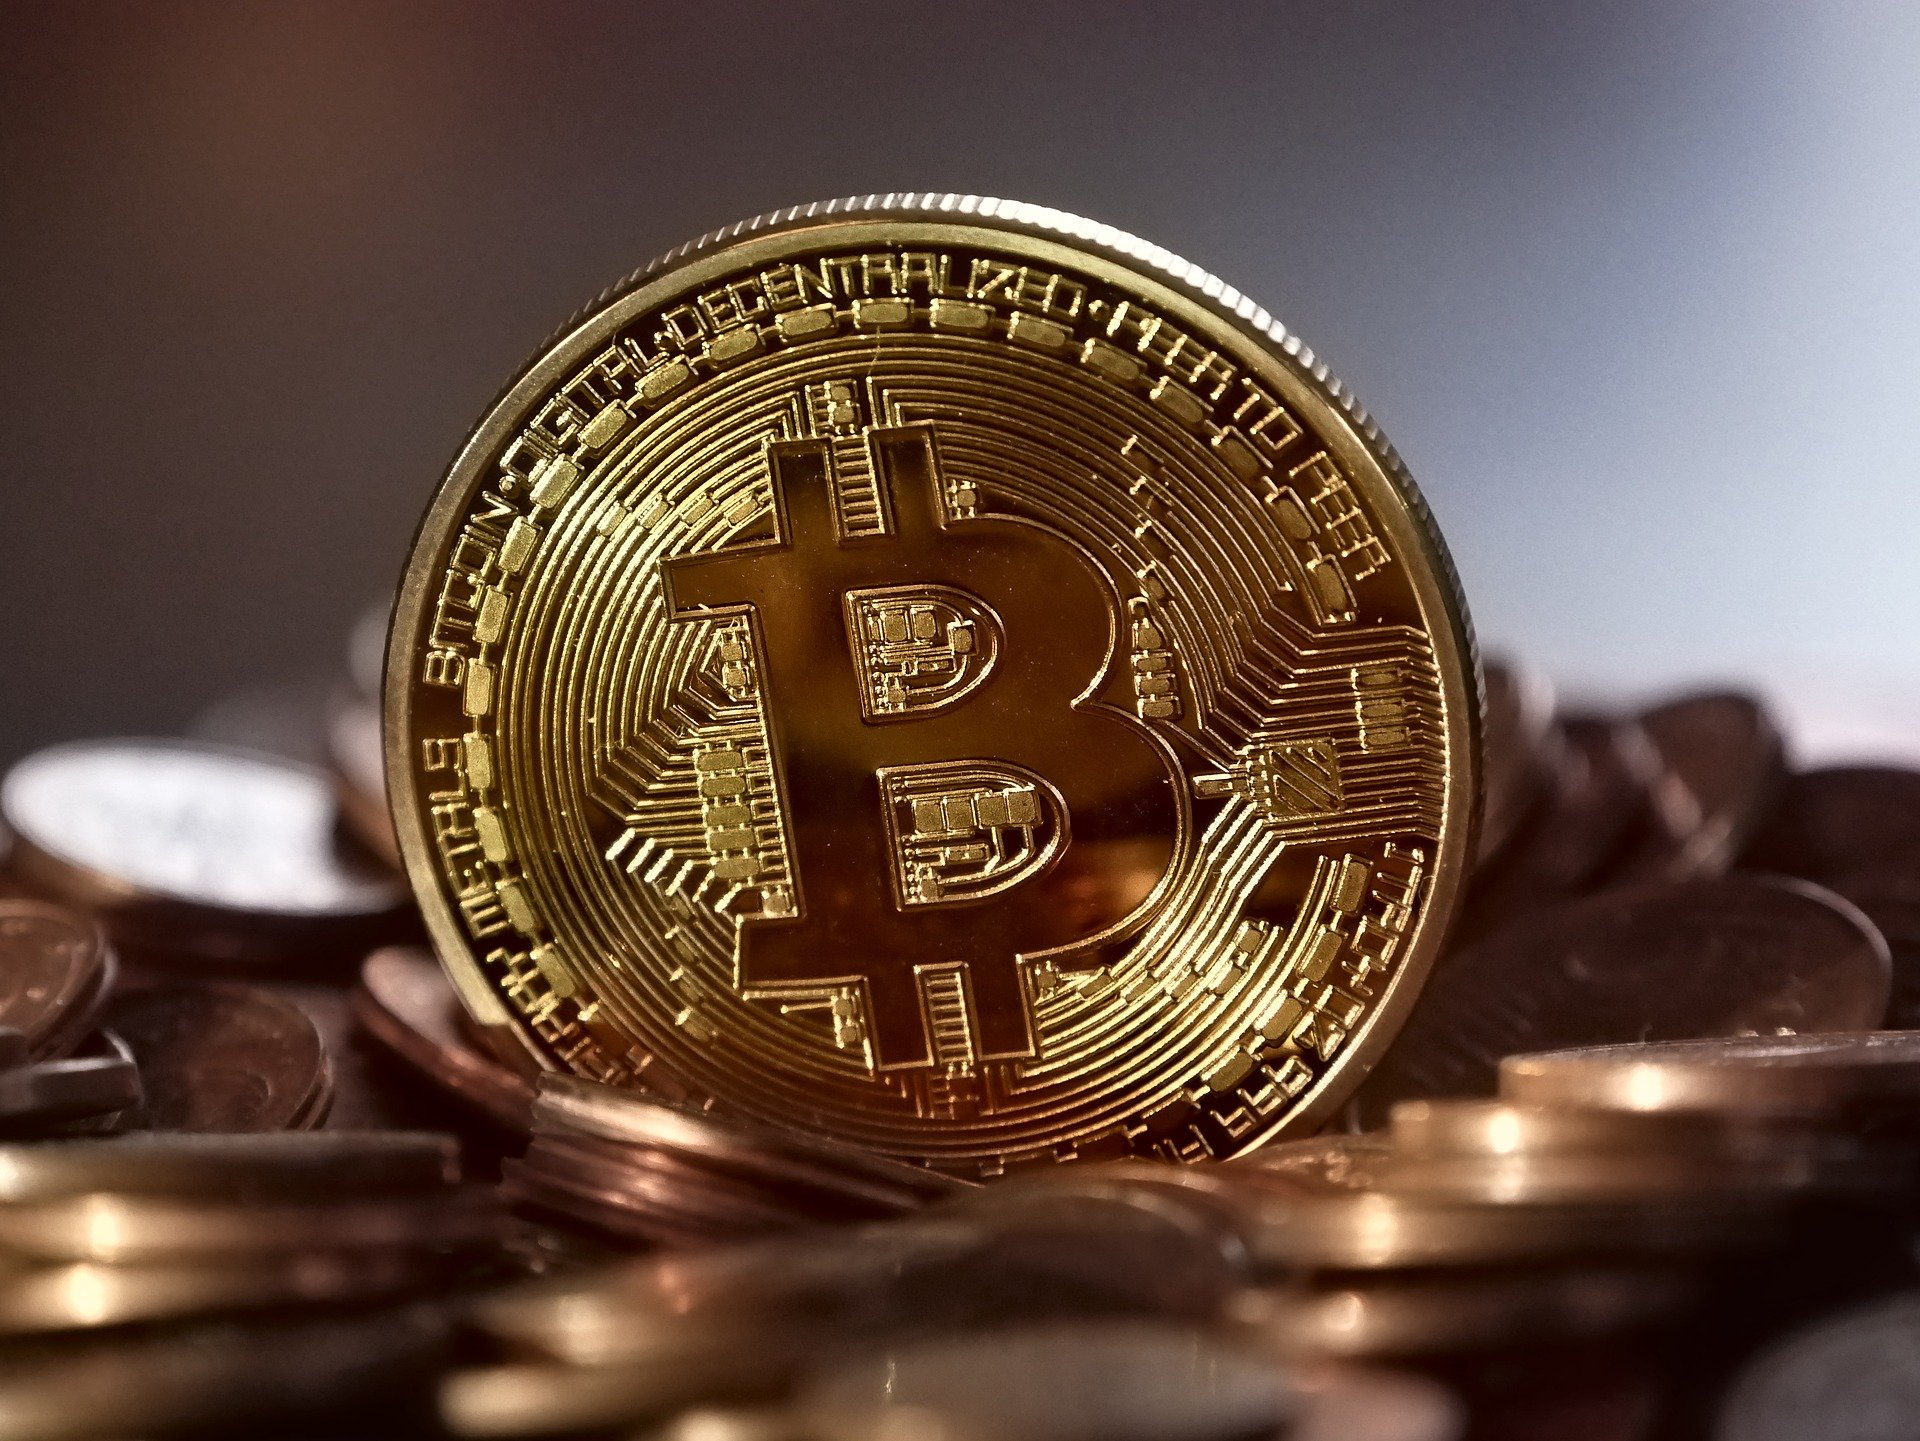 2017: the Year of the Bitcoin